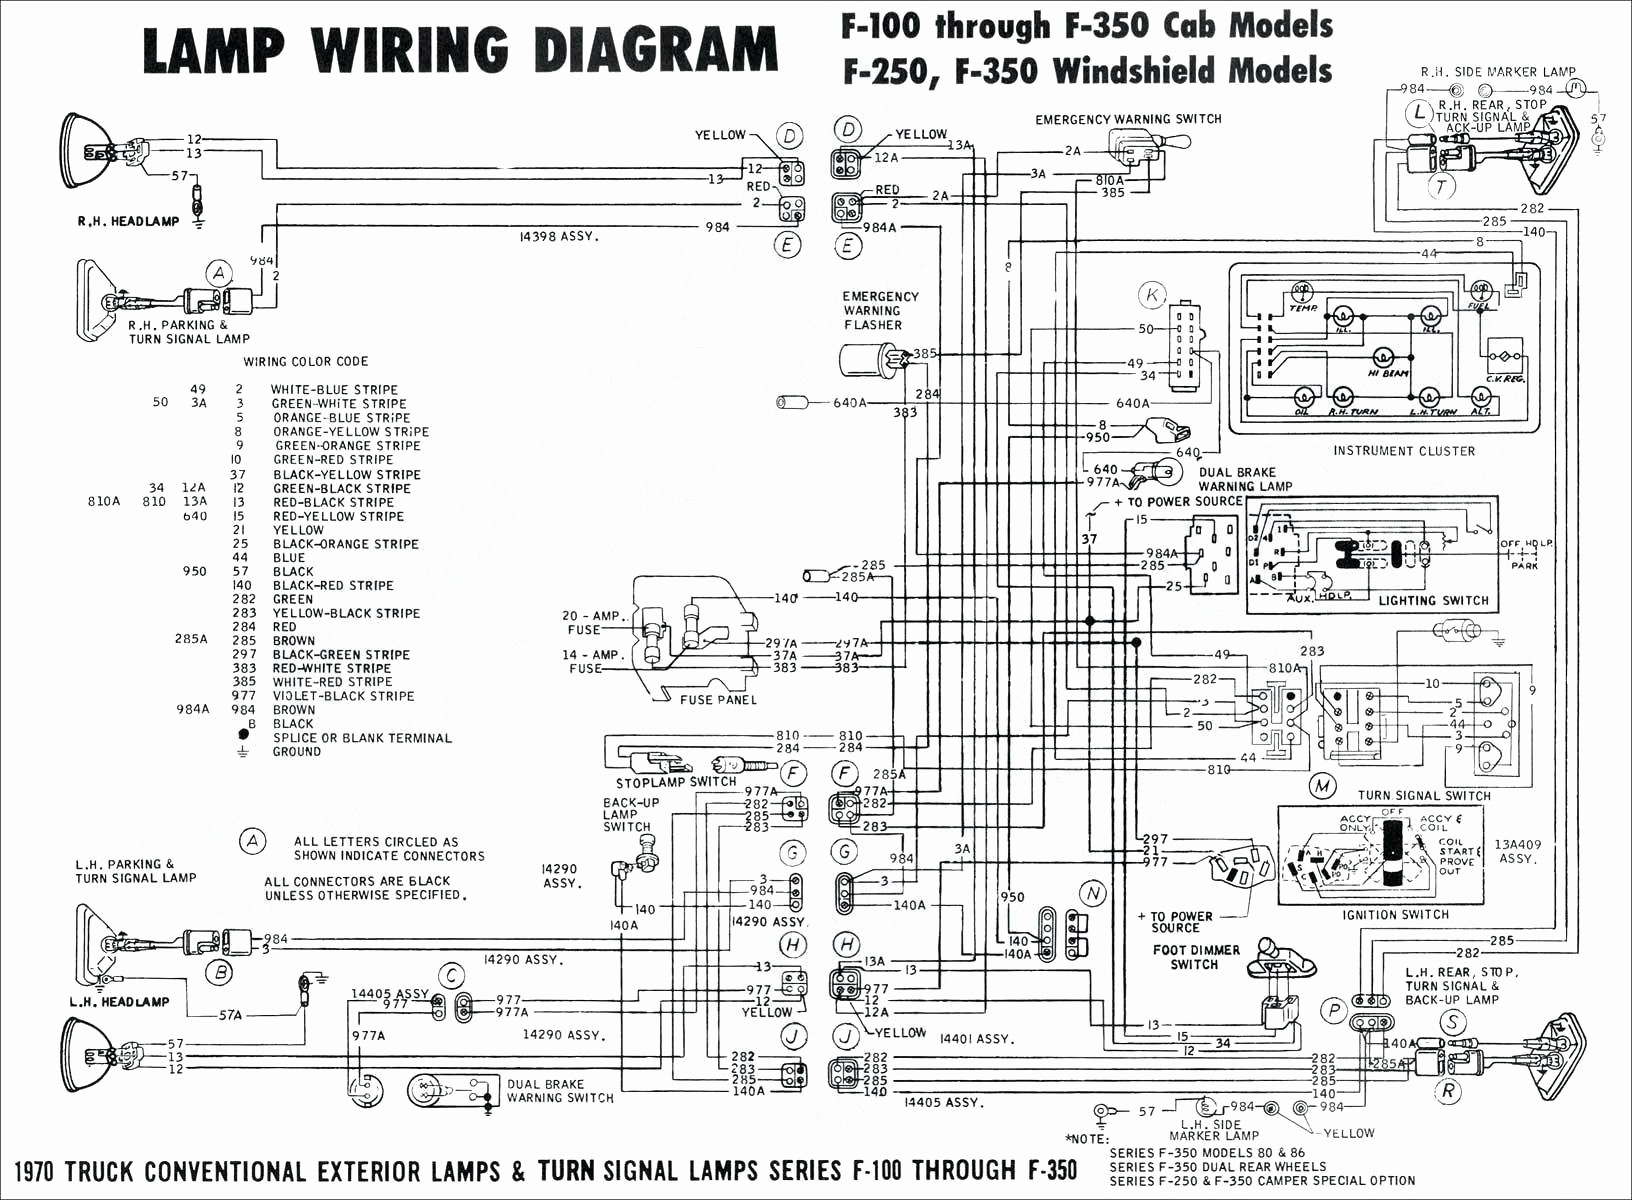 Wiring Diagram For A Pioneer Deh X6600Bt | Wiring Diagram - Pioneer Deh-X6600Bt Wiring Diagram